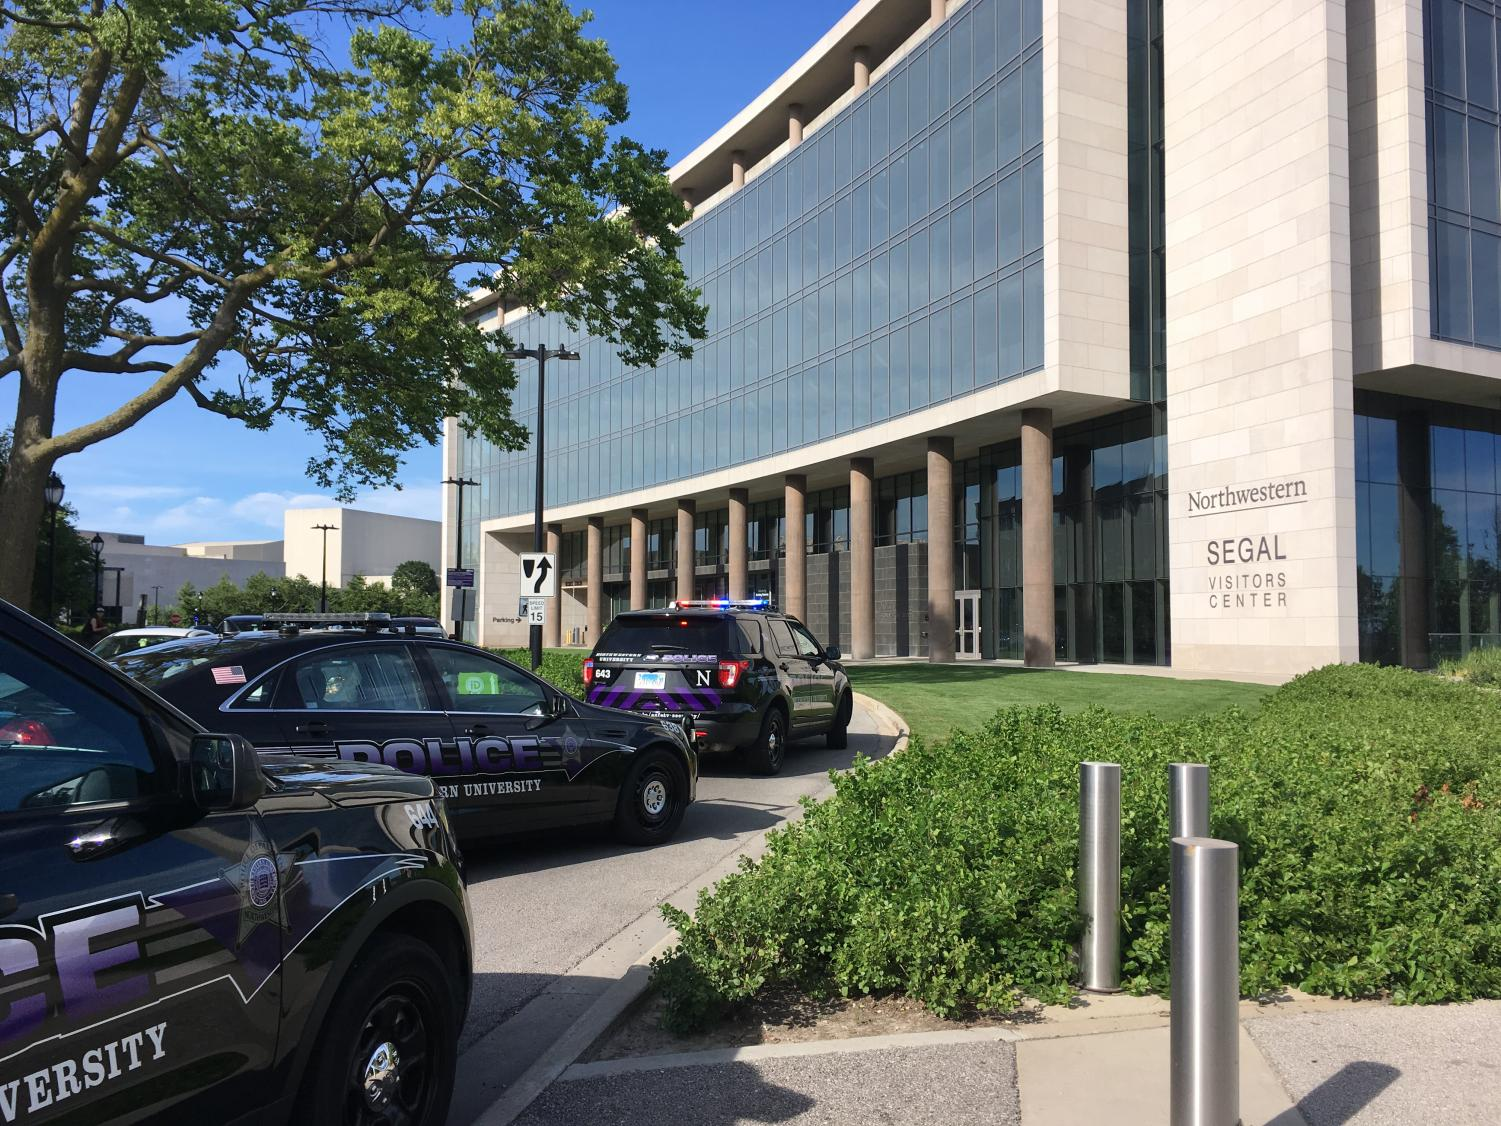 Northwestern police cars parked outside the Segal Visitor's Center. NUPD and EPD are investigating a call of a shooter on campus.